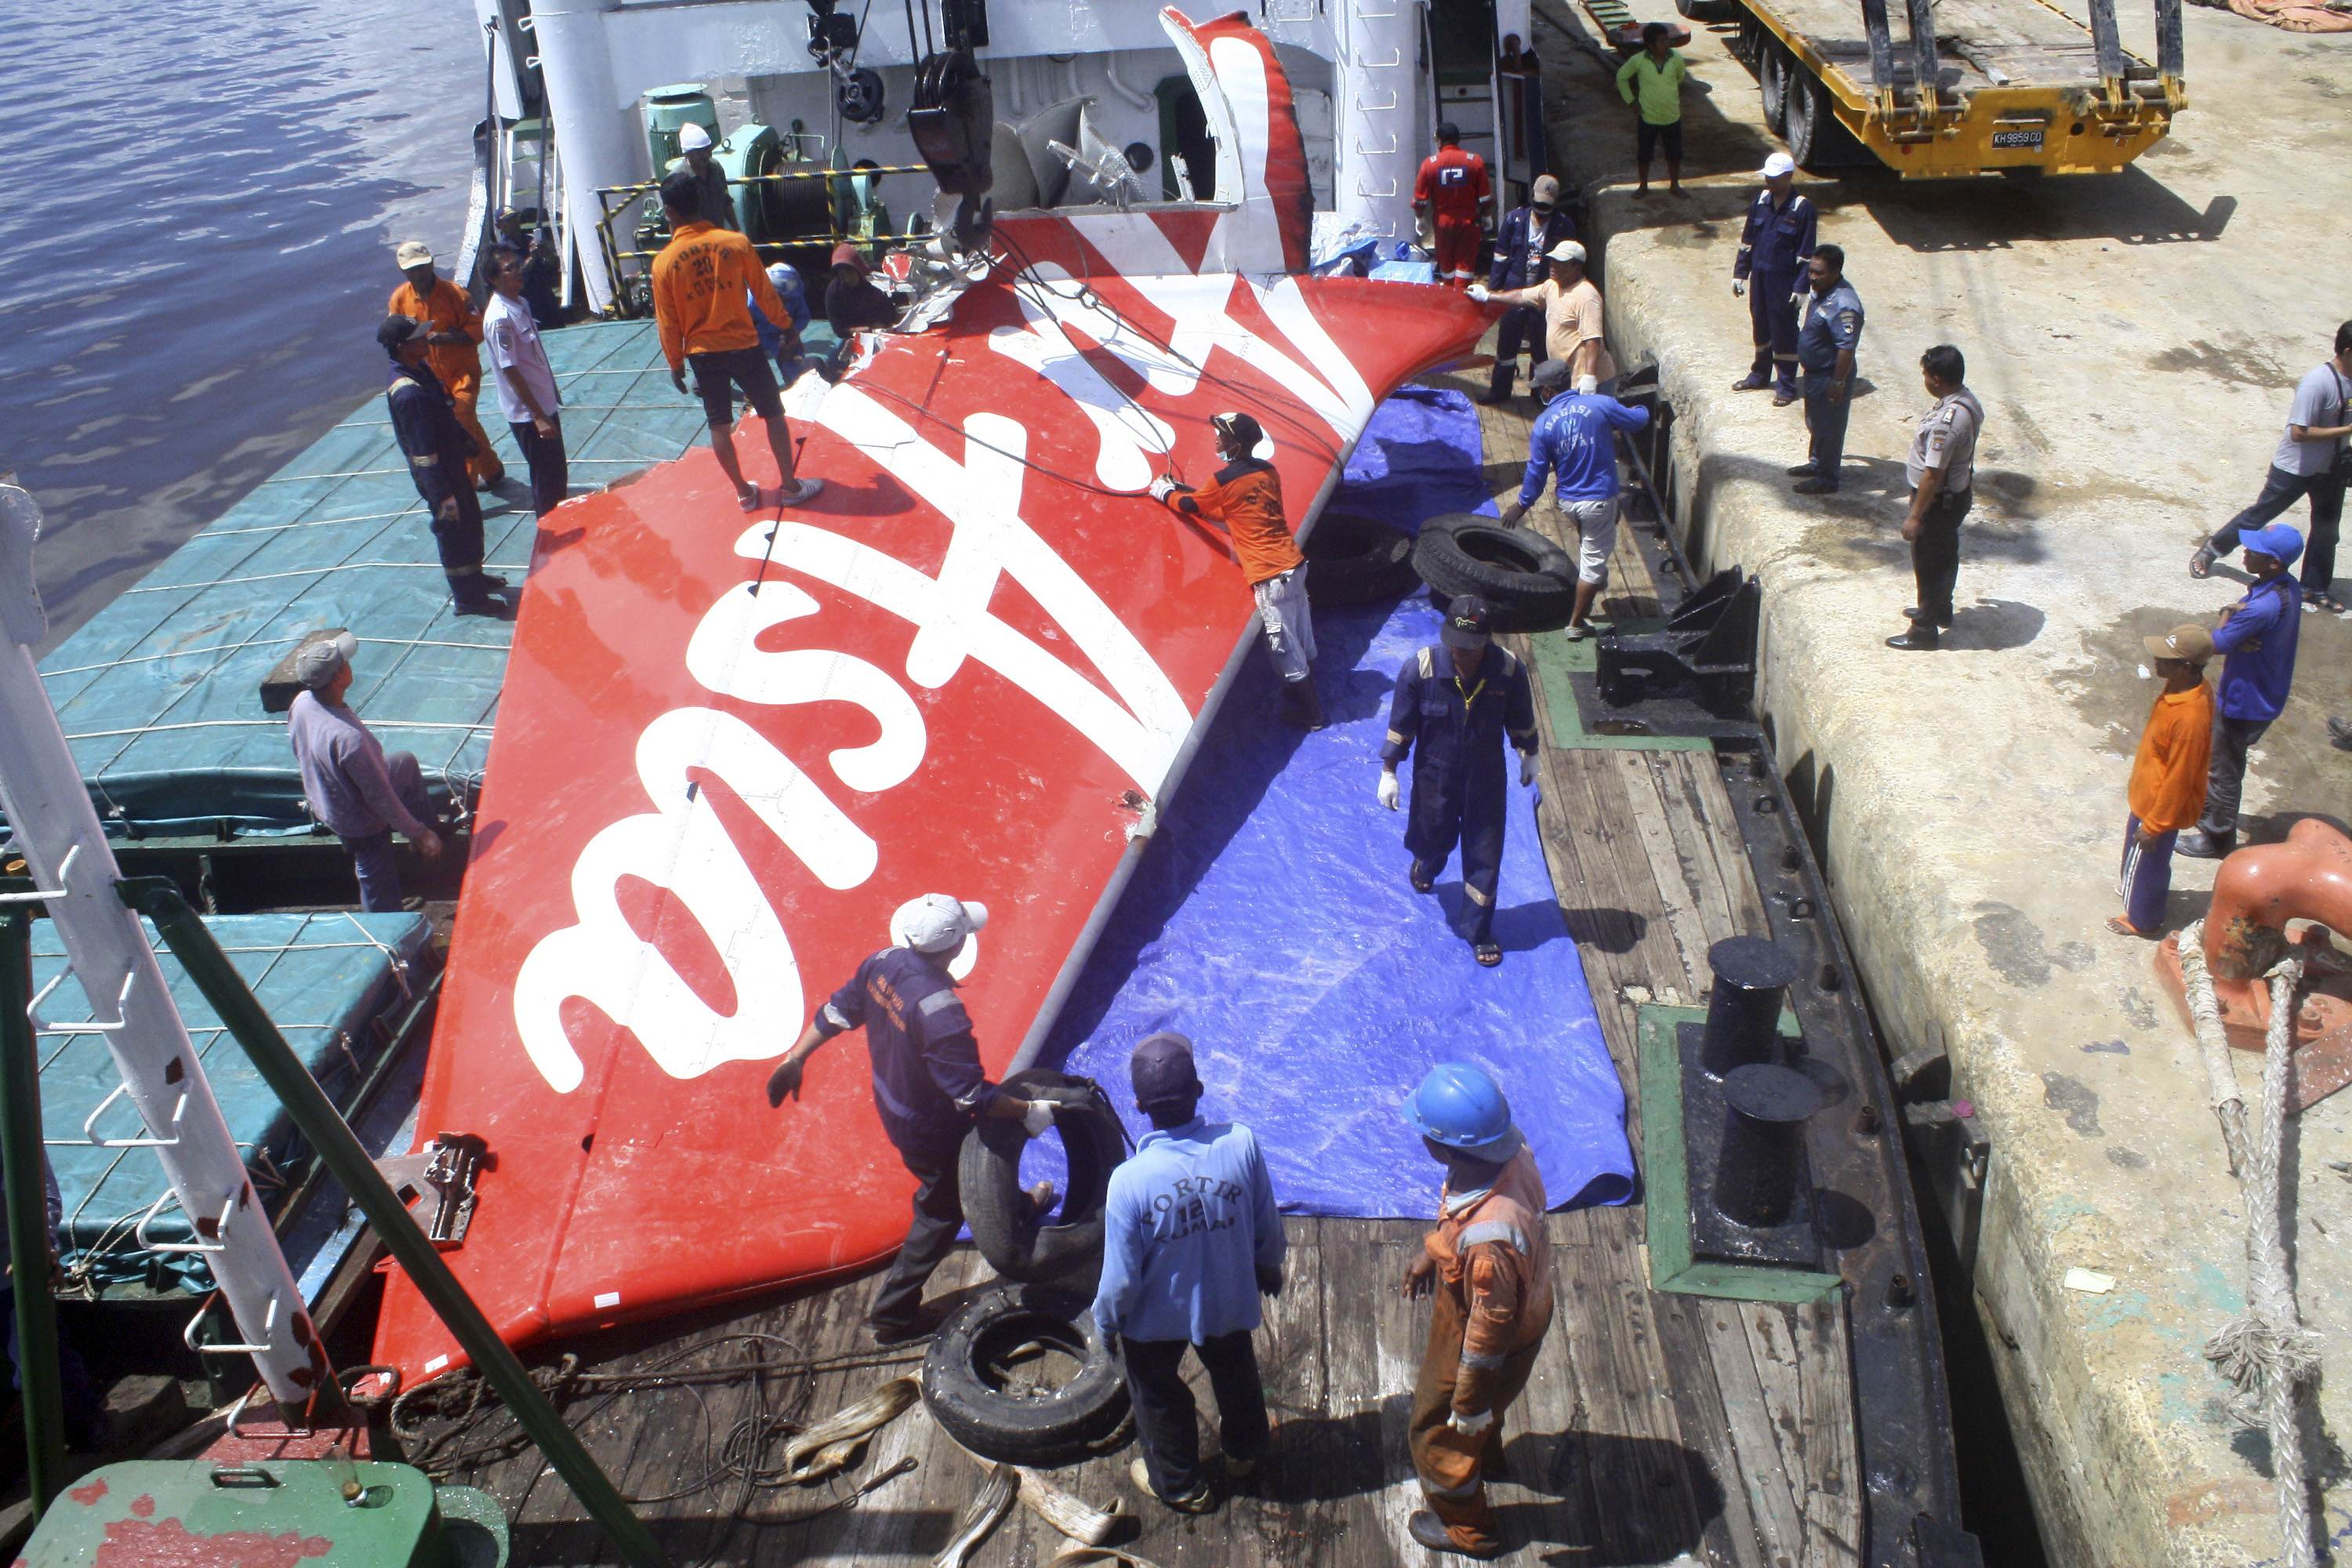 A section of AirAsia flight QZ8501's tail is loaded onto a boat for transportation to Jakarta from Kumai Port, near Pangkalan Bun, Central Kalimantan